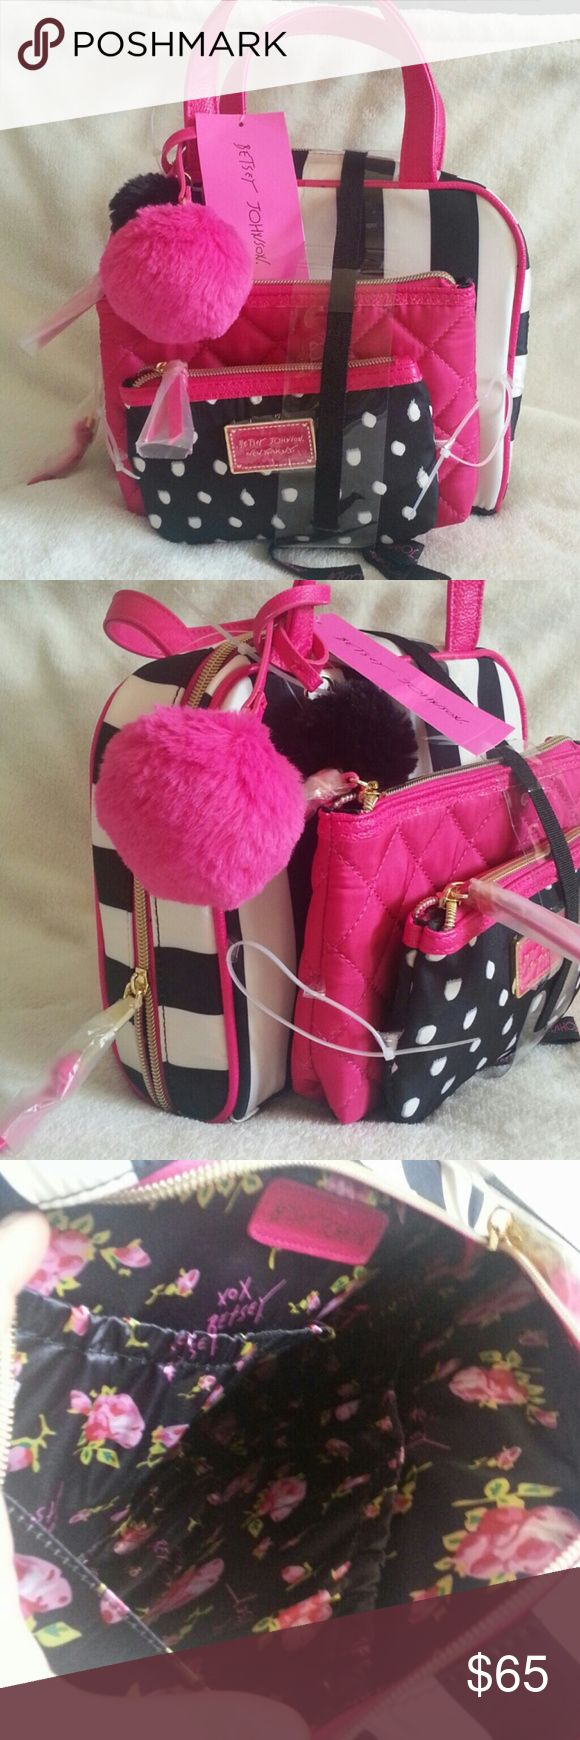 FINAL SALENO OFFER BetseyJohnson CosmeticBag Set 3 Piece Cosmetic Bag Set PRICE IS FIRM Betsey Johnson Bags Cosmetic Bags & Cases